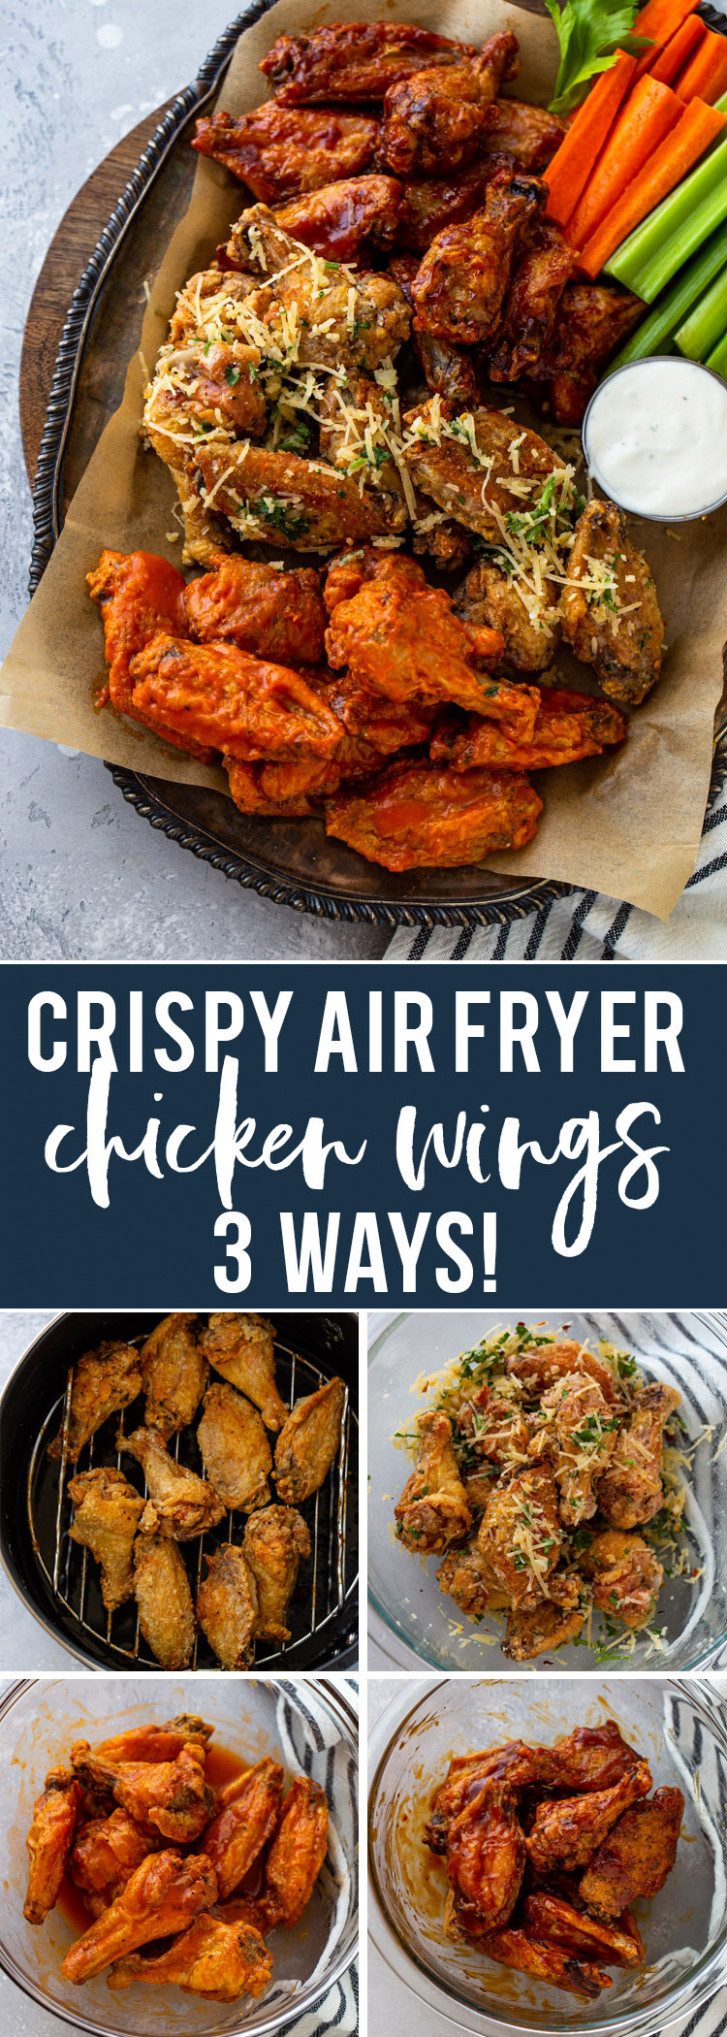 Super Crispy Air Fryer Chicken Wings (12 Ways!) - Recipes Air Fryer Chicken